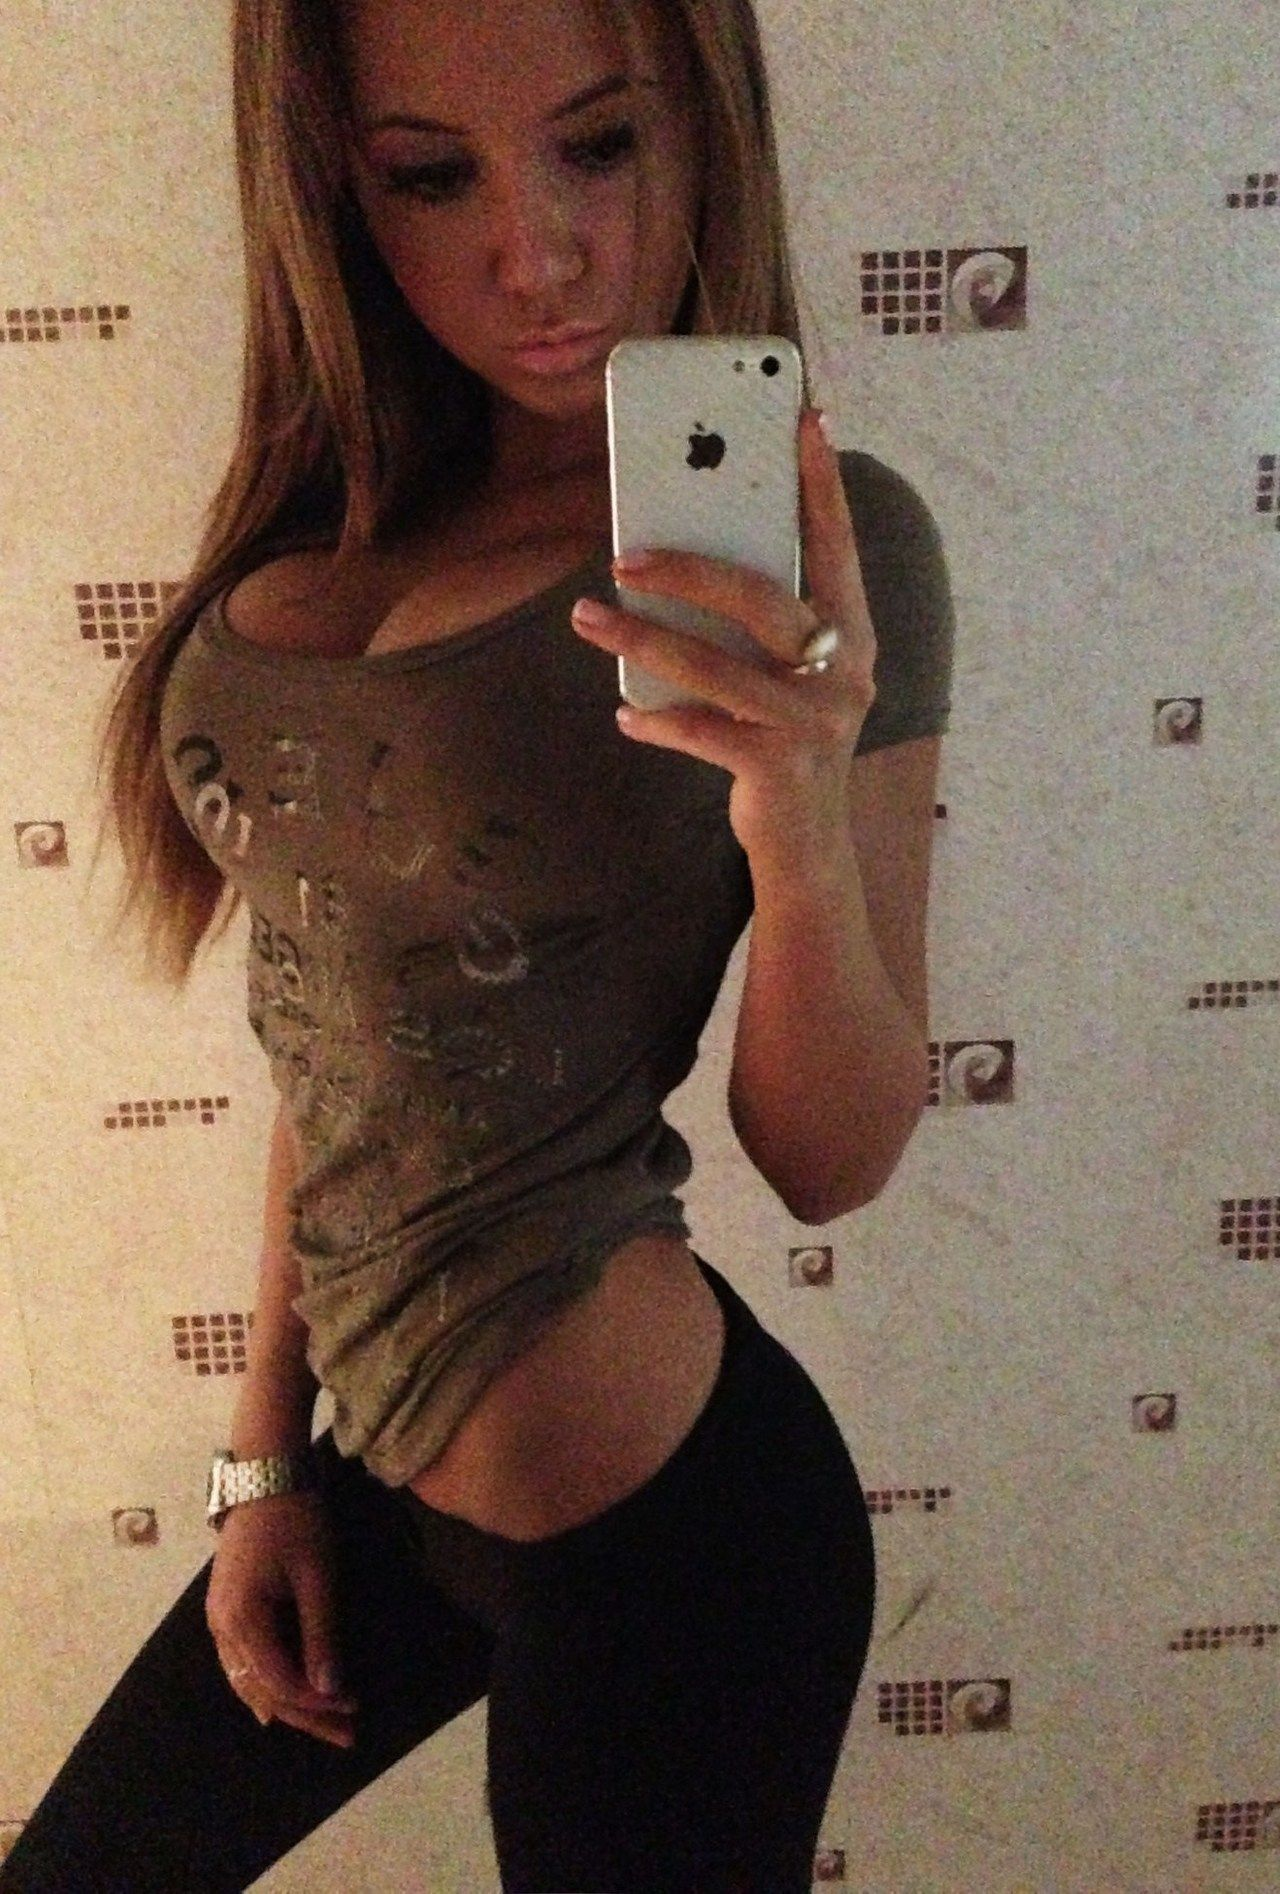 Images Of Semi Nude Girls